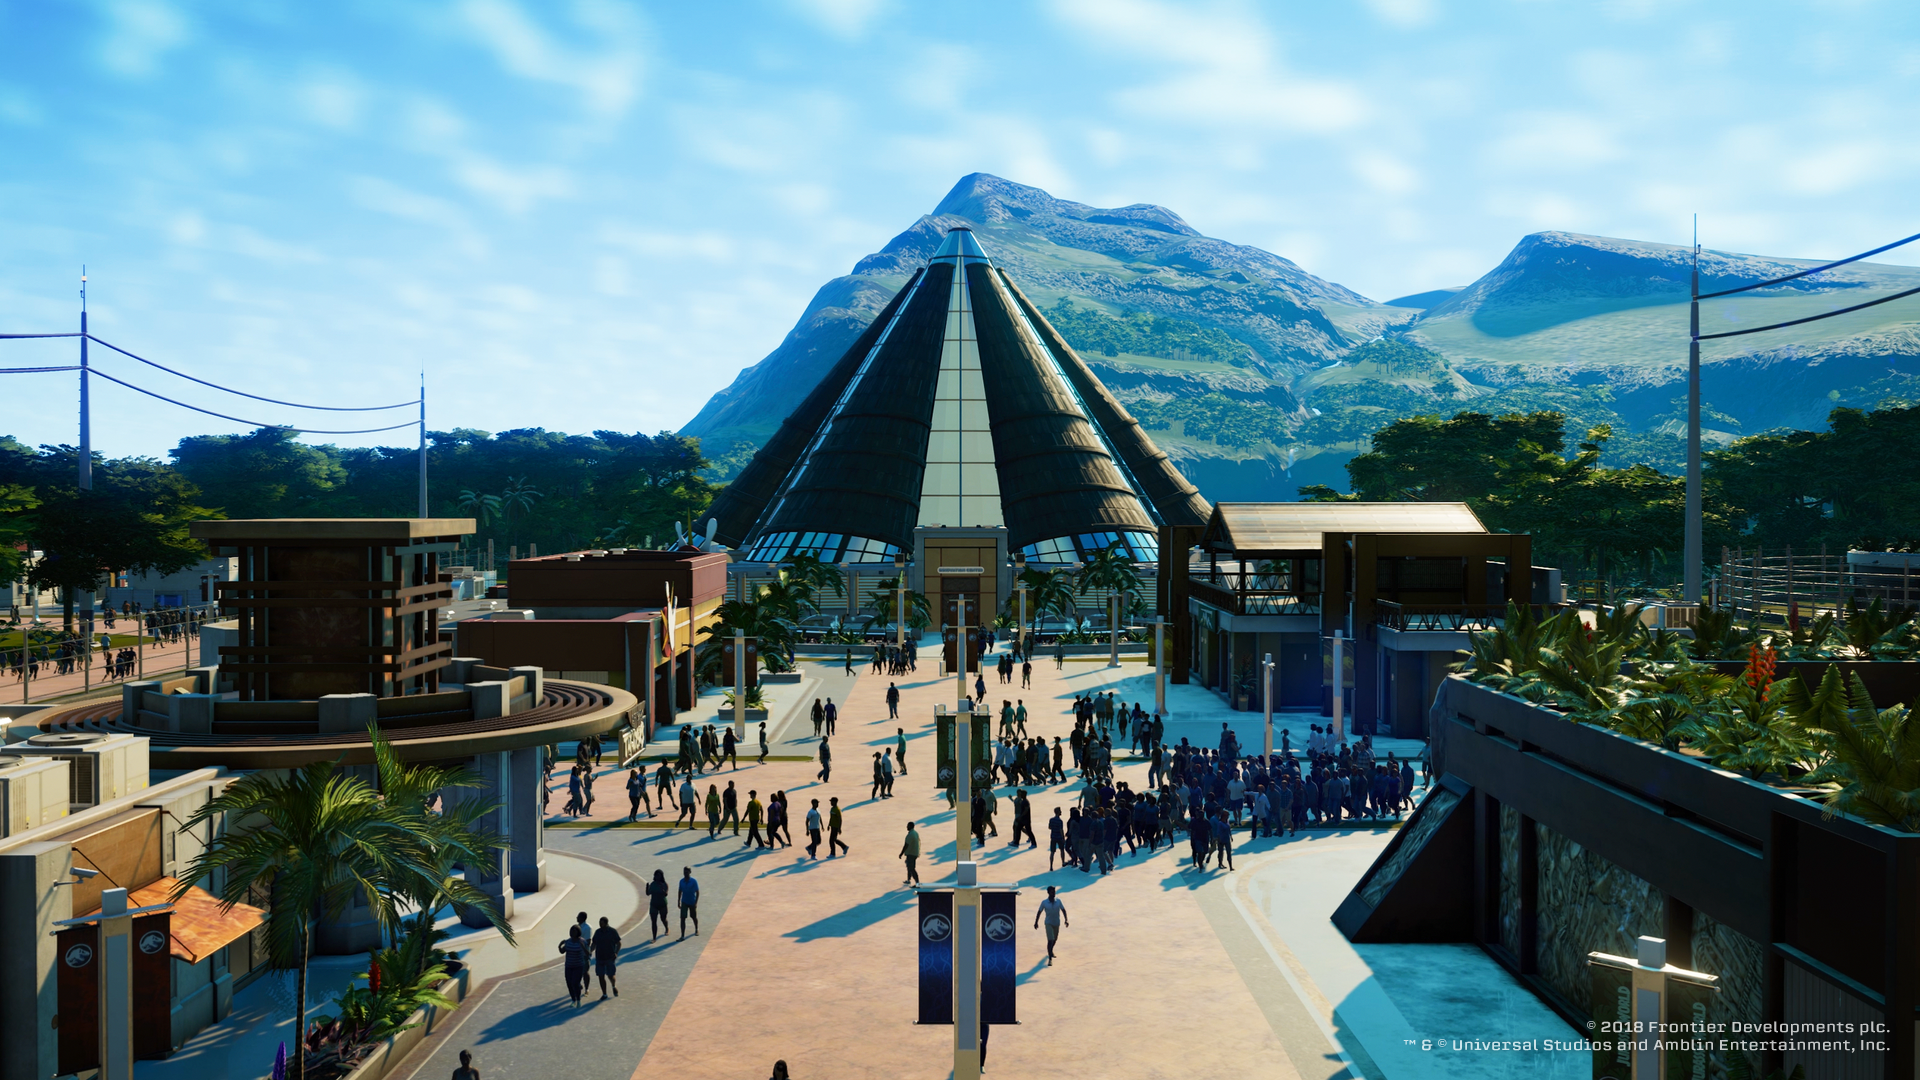 Jurassic World Evolution - in the beginning